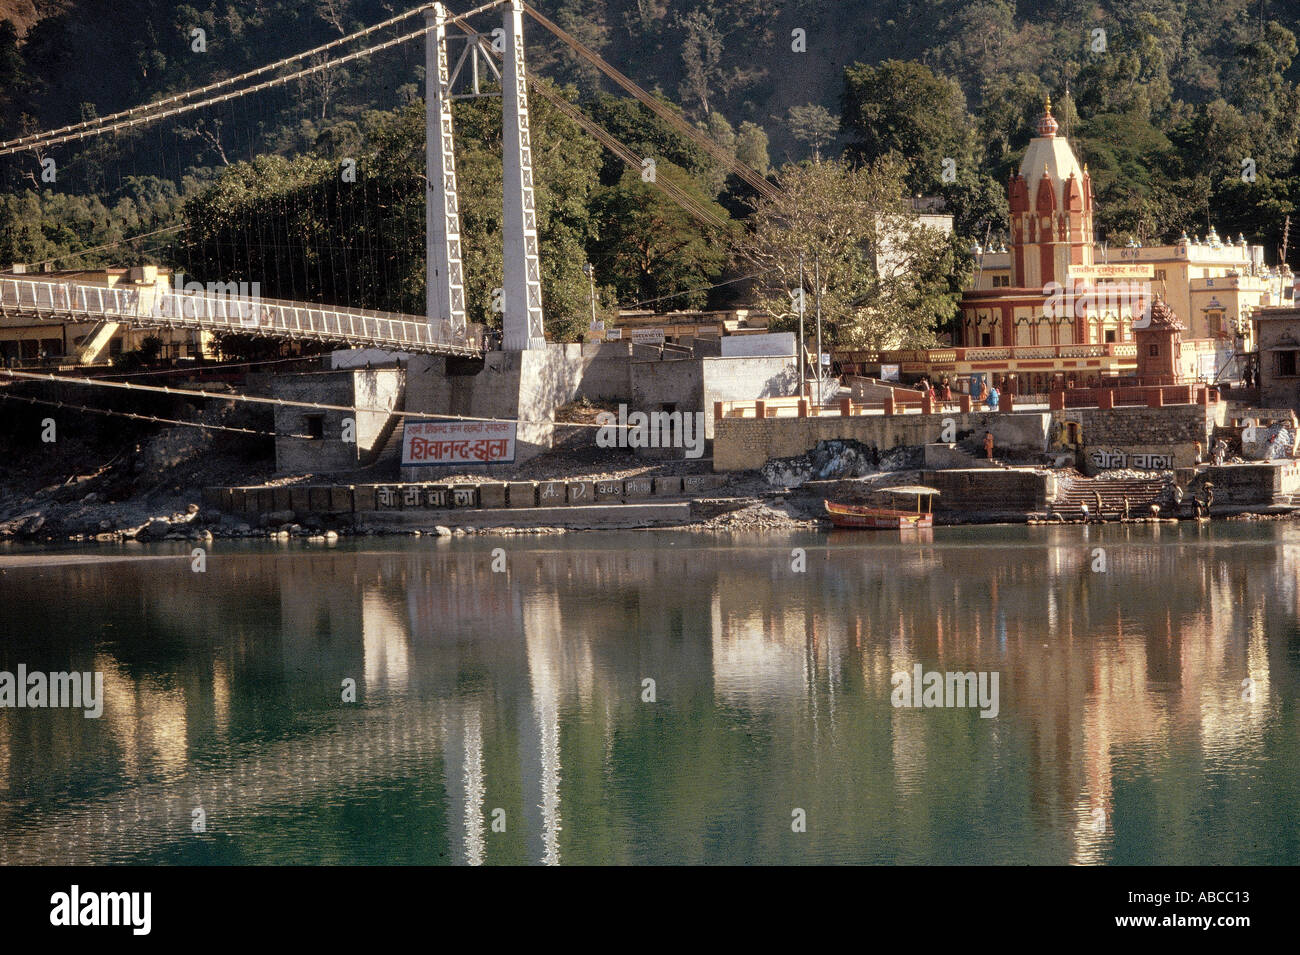 A place from North India. Reflection of the building is seen clear water. - Stock Image